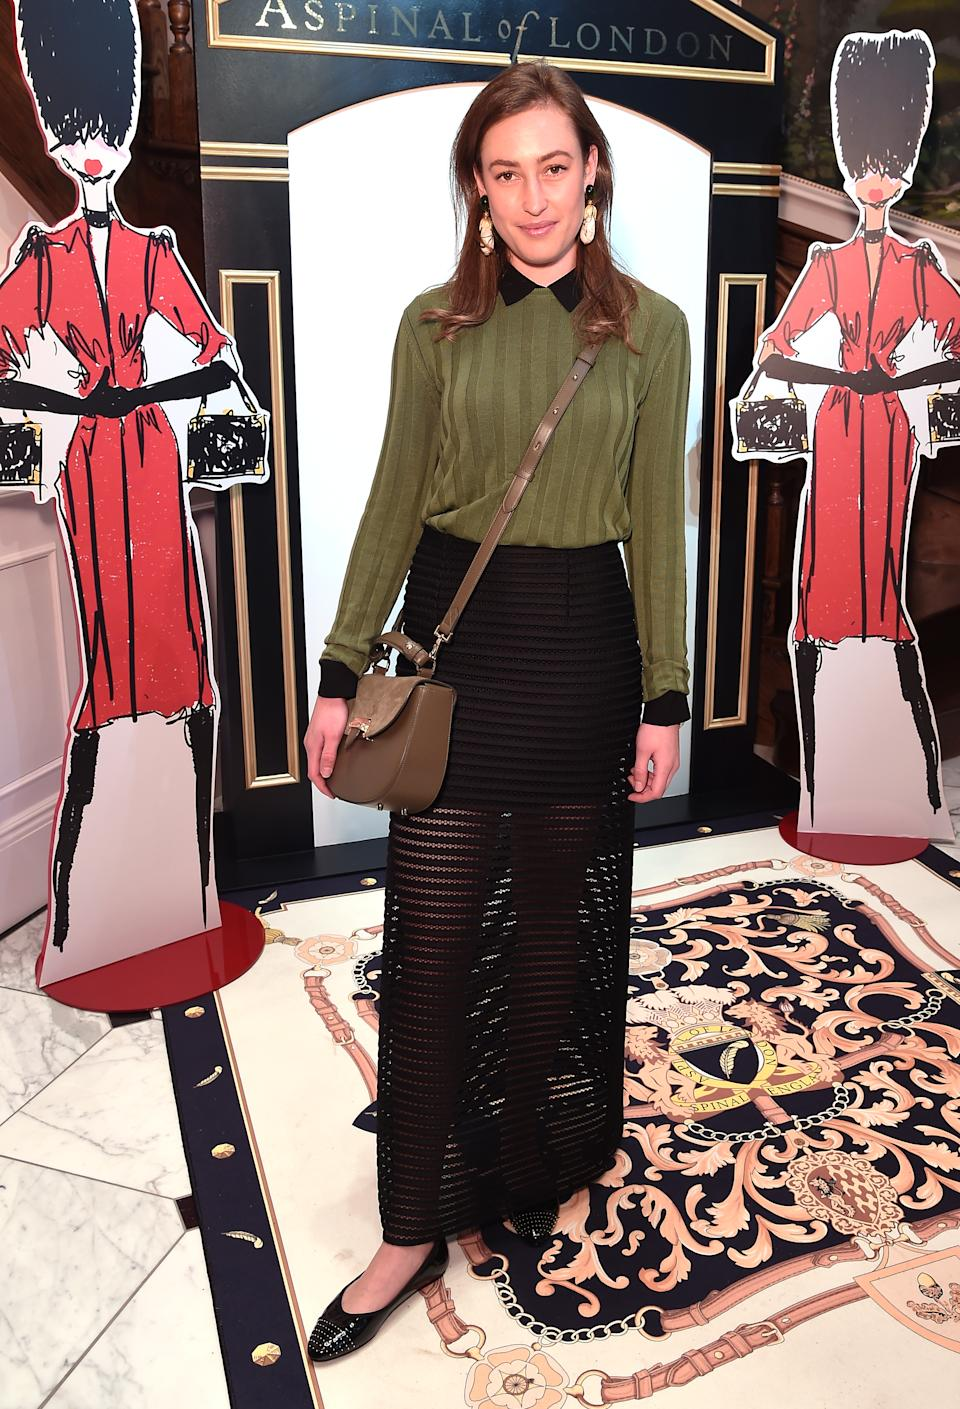 LONDON, ENGLAND - FEBRUARY 18: Lady Tatiana Mountbatten attends the Aspinal of London AW19 presentation during London Fashion Week February 2019 at the Aspinal Of London on February 18, 2019 in London, England. (Photo by Eamonn McCormack/BFC/Getty Images)